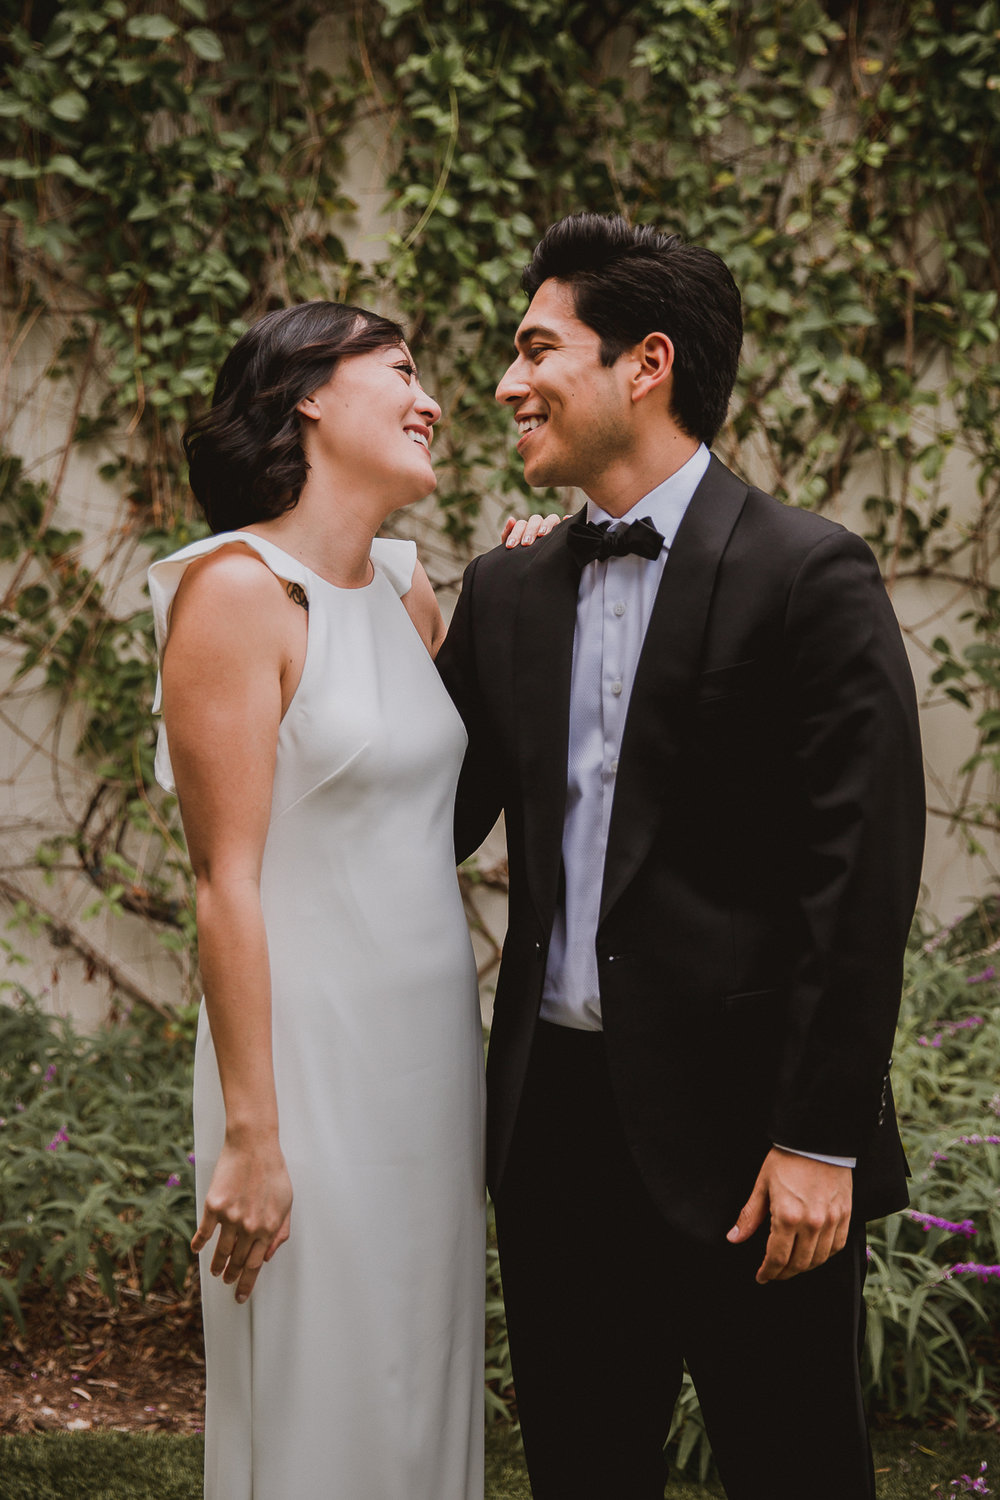 bower-museum-santa-ana-orange-county-kelley-raye-los-angeles-wedding-photographer-81.jpg